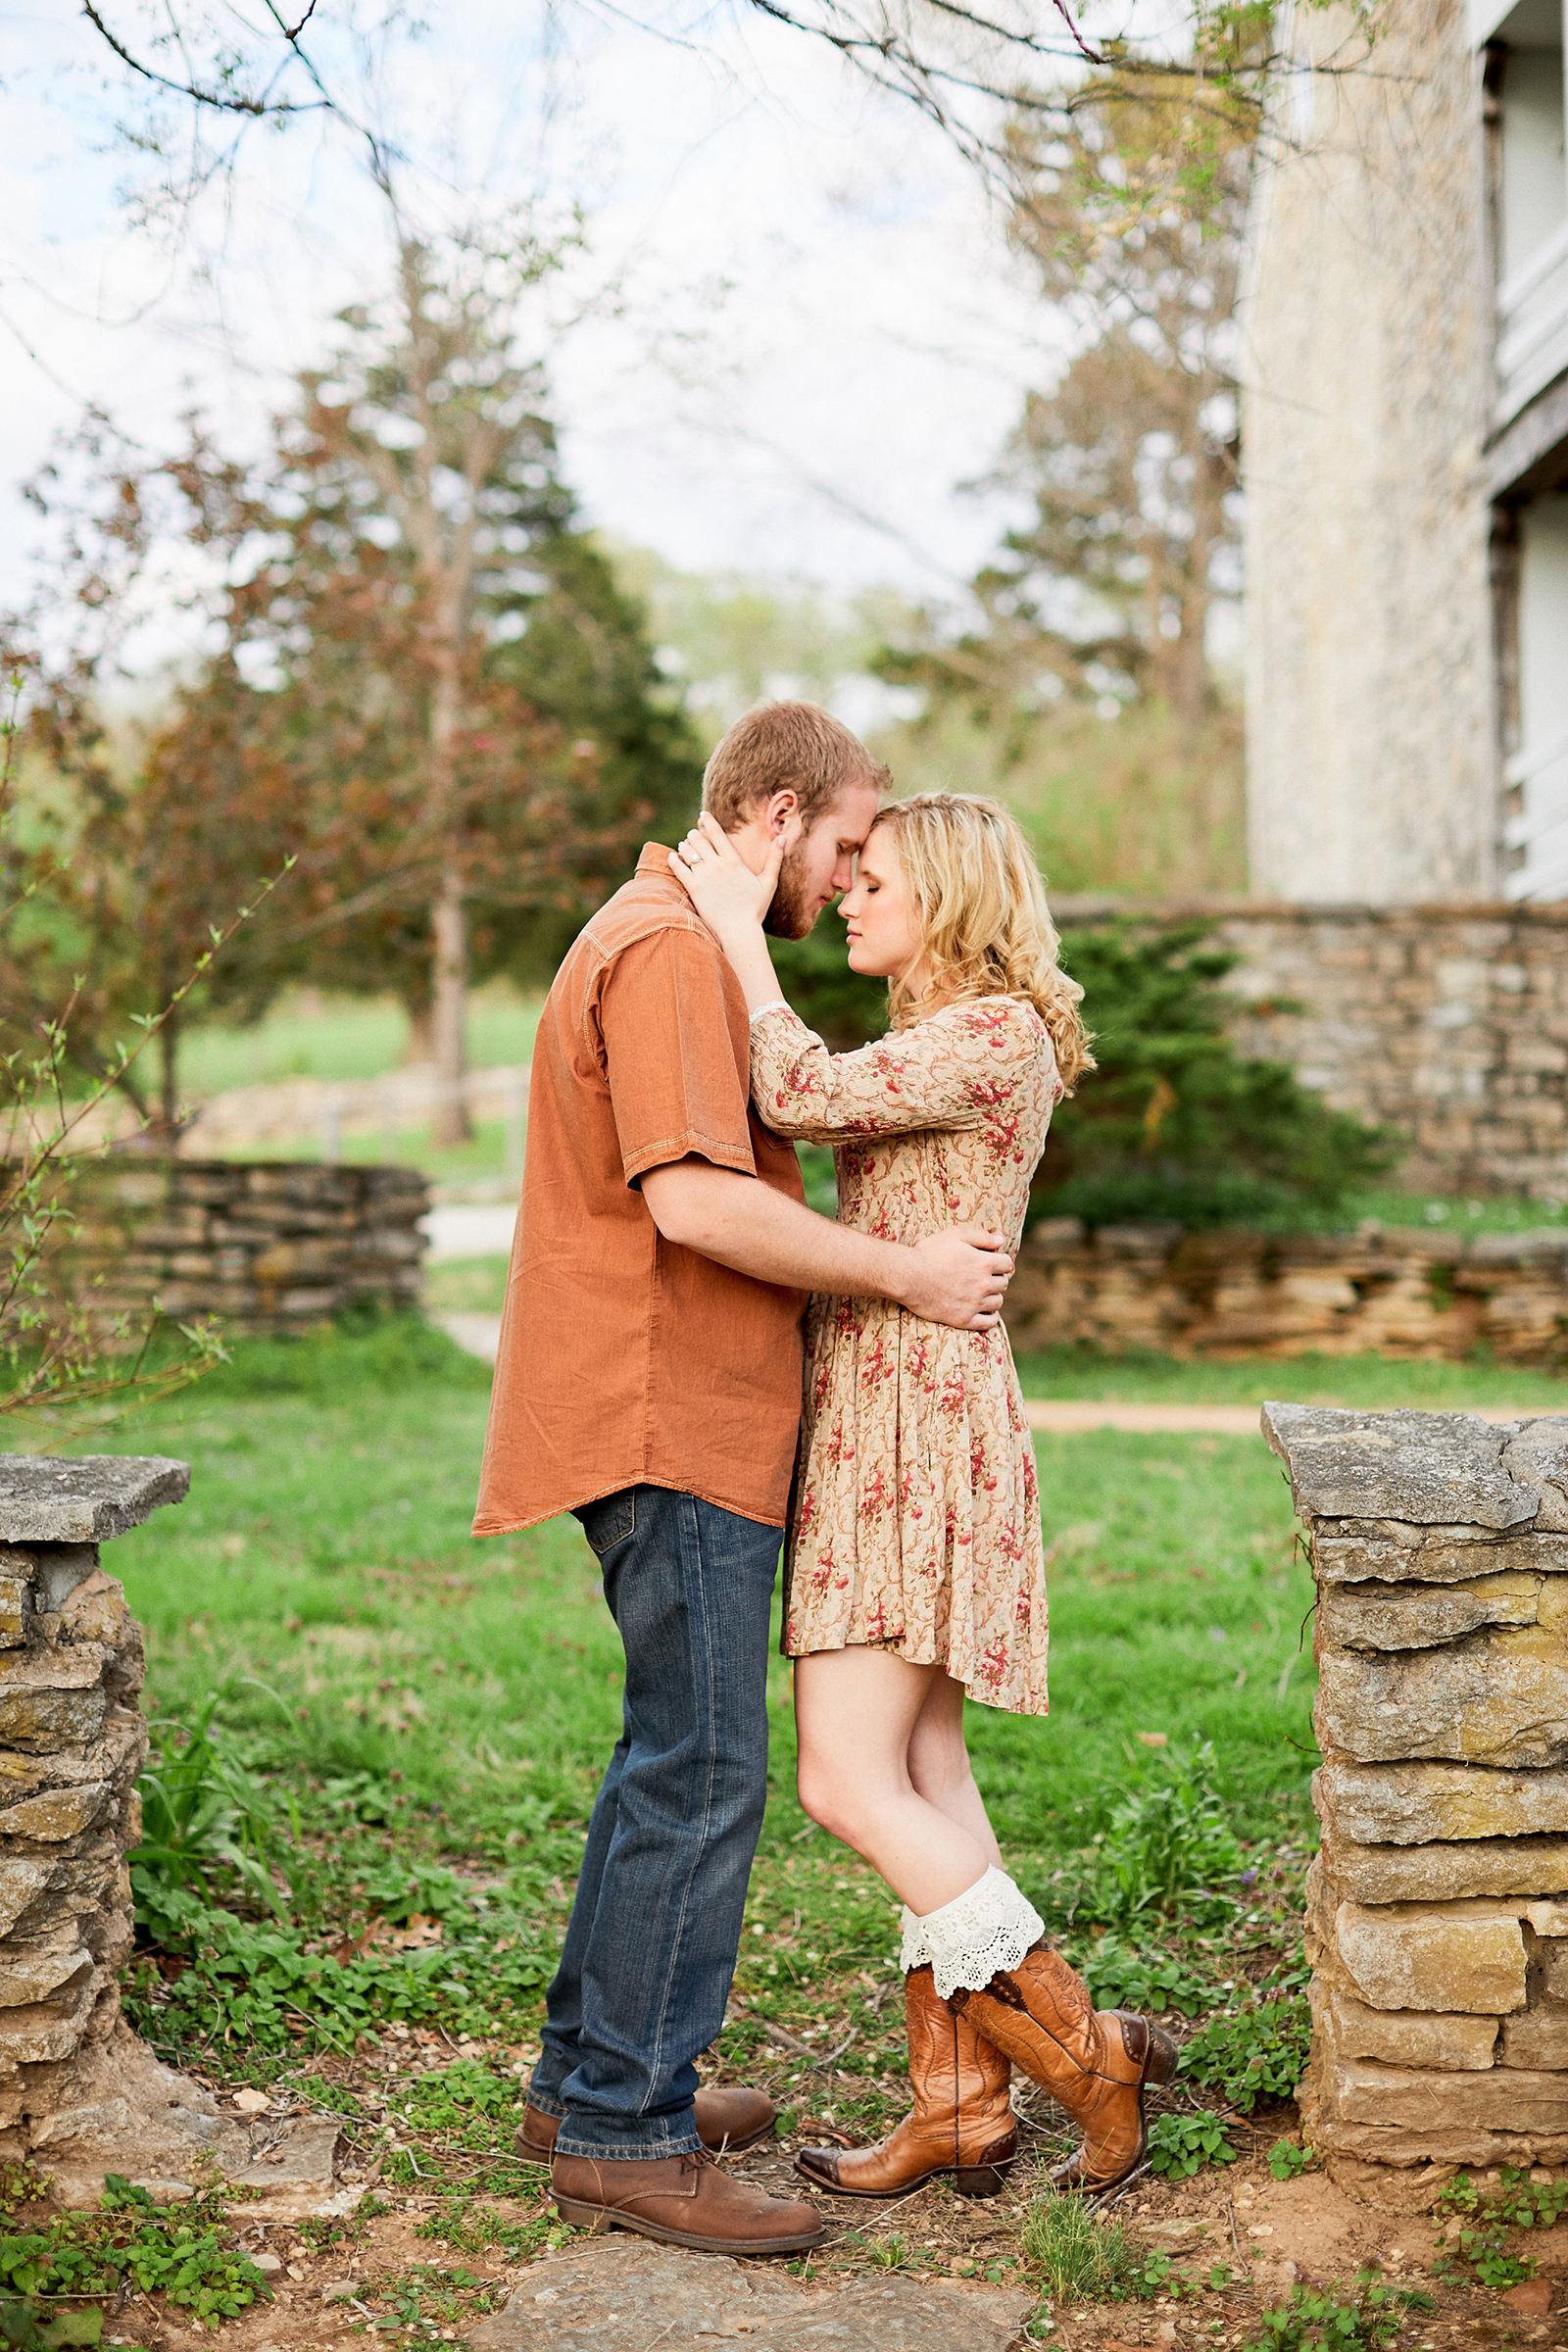 Daniel Boone Home Engagement Session in St Charles County by Oldani Photography St. Louis Wedding Photographers23.jpg